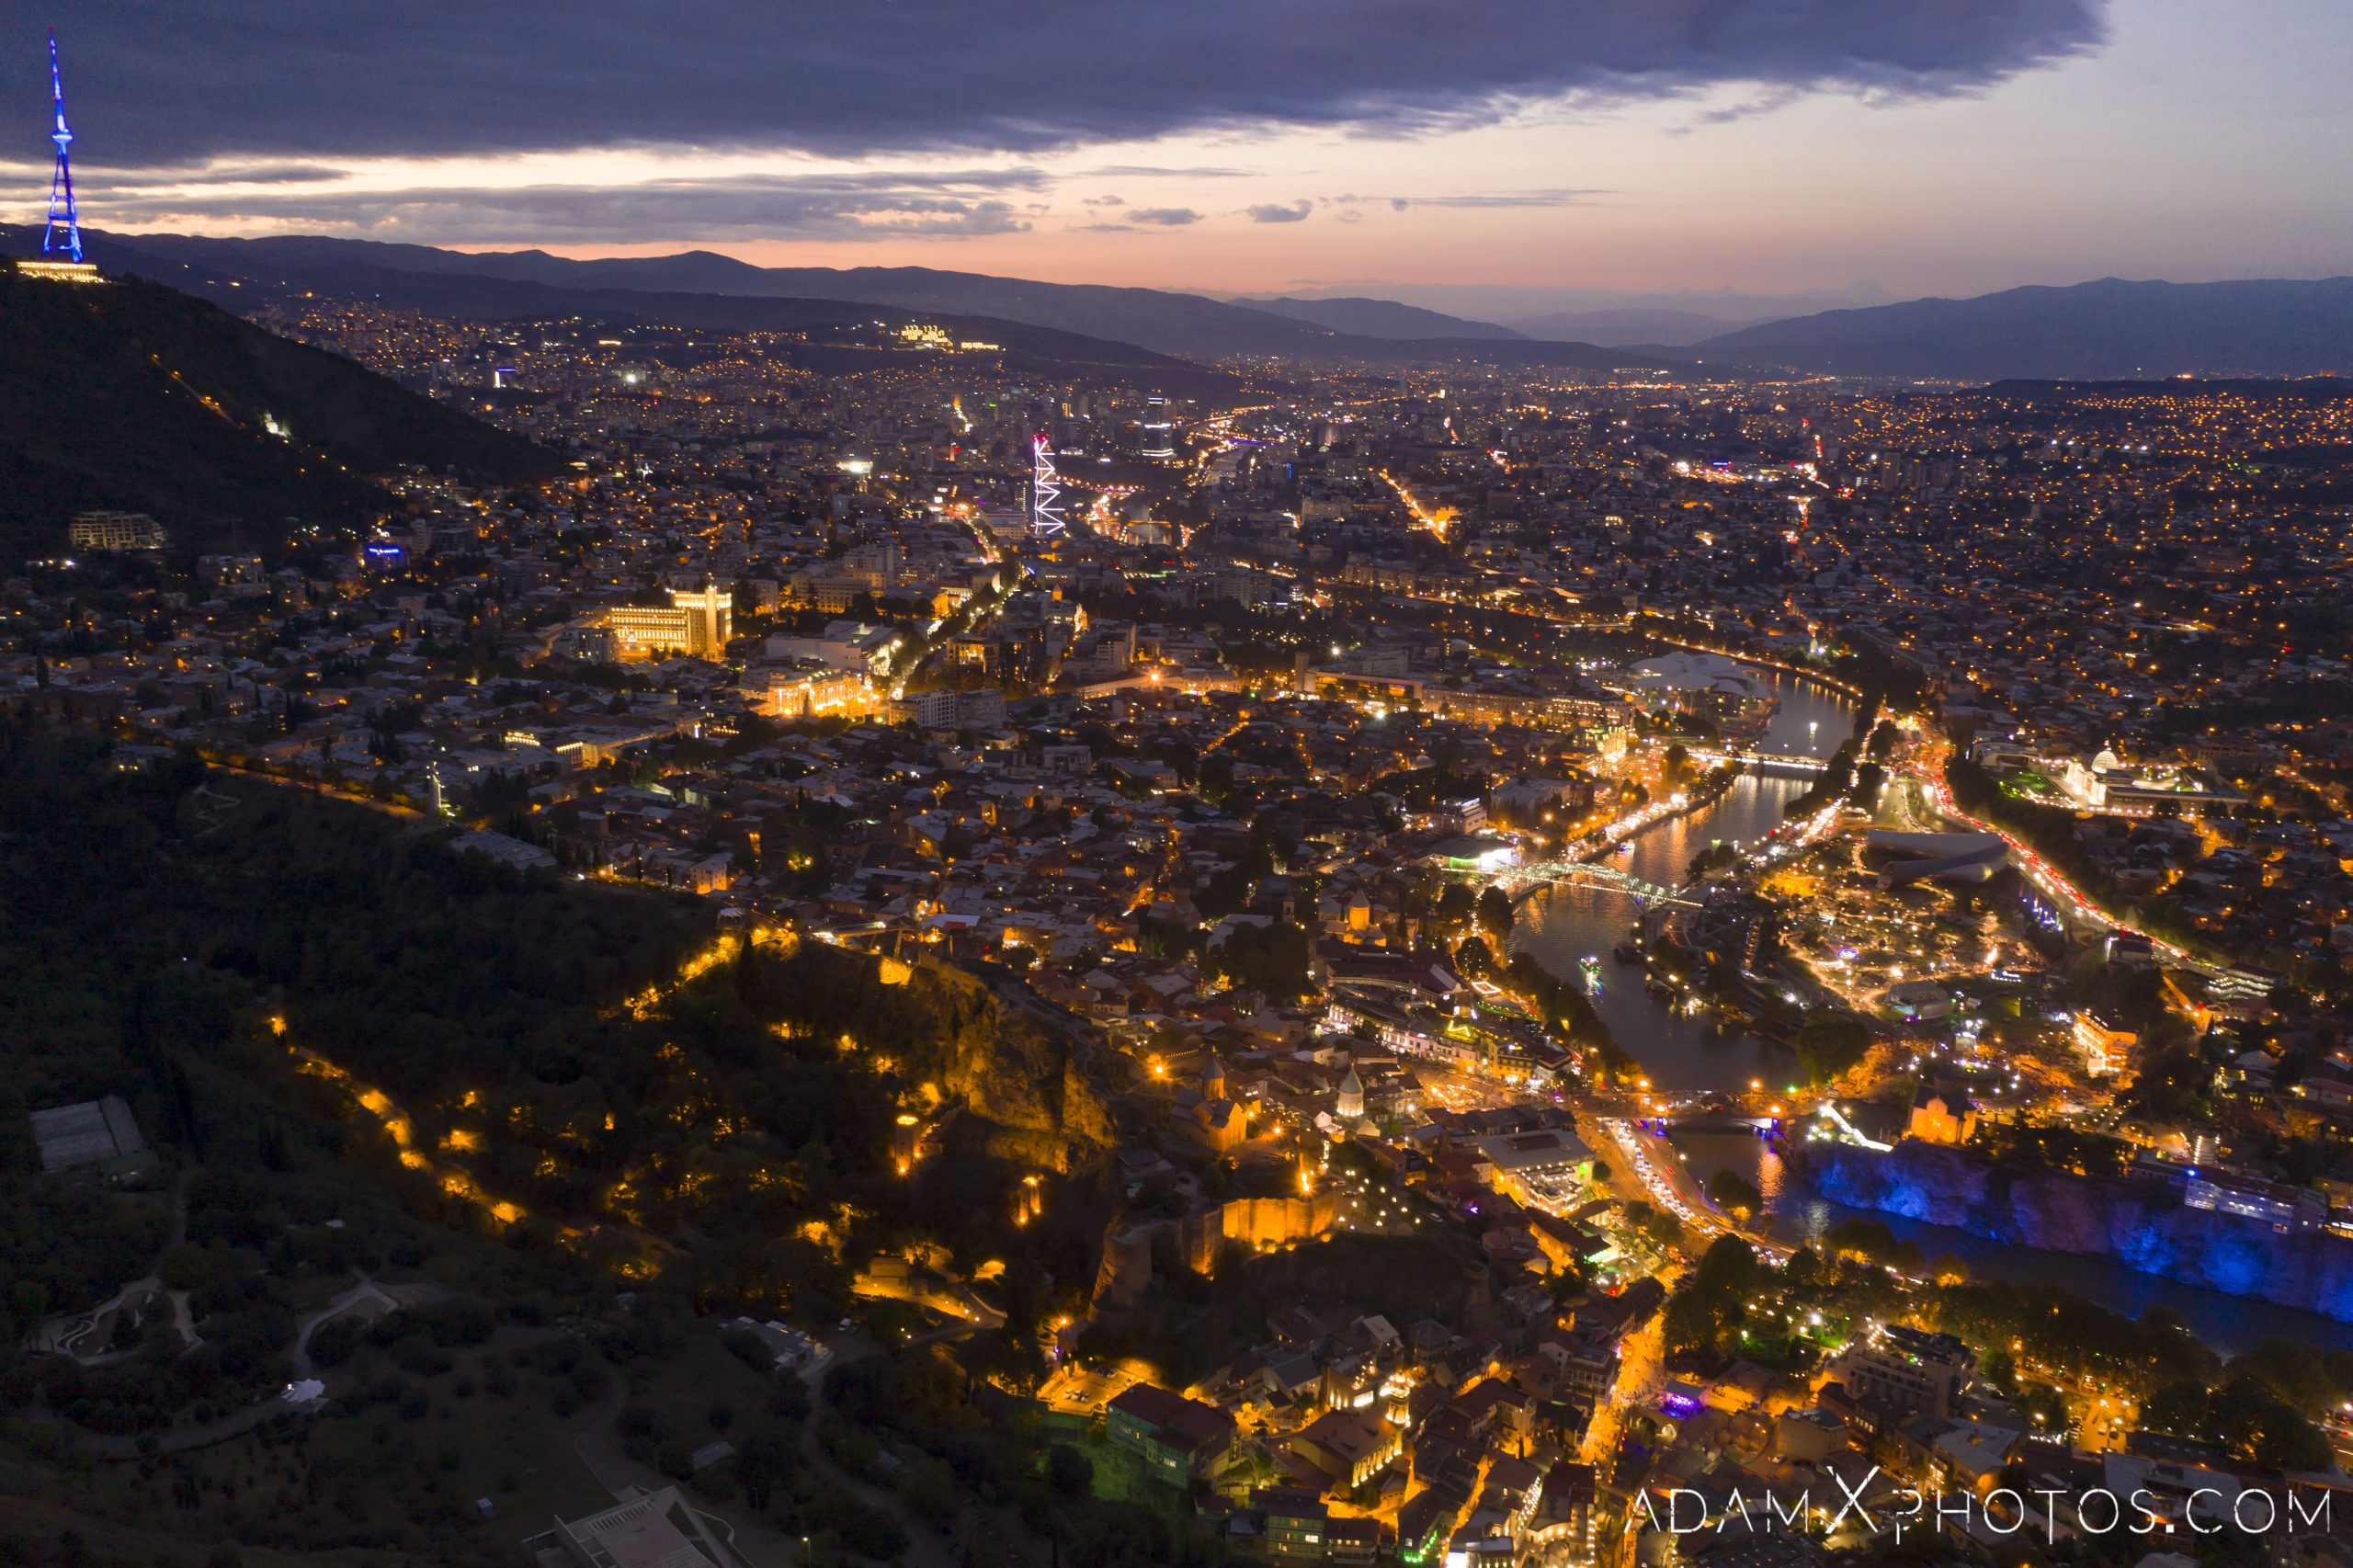 Drone from above aerial DJI Mavic Pro 2 Georgia Tbilisi Night photograph photography sunset beautiful landscape best Adam X AdamXPhotos lights colourful architecture architectural